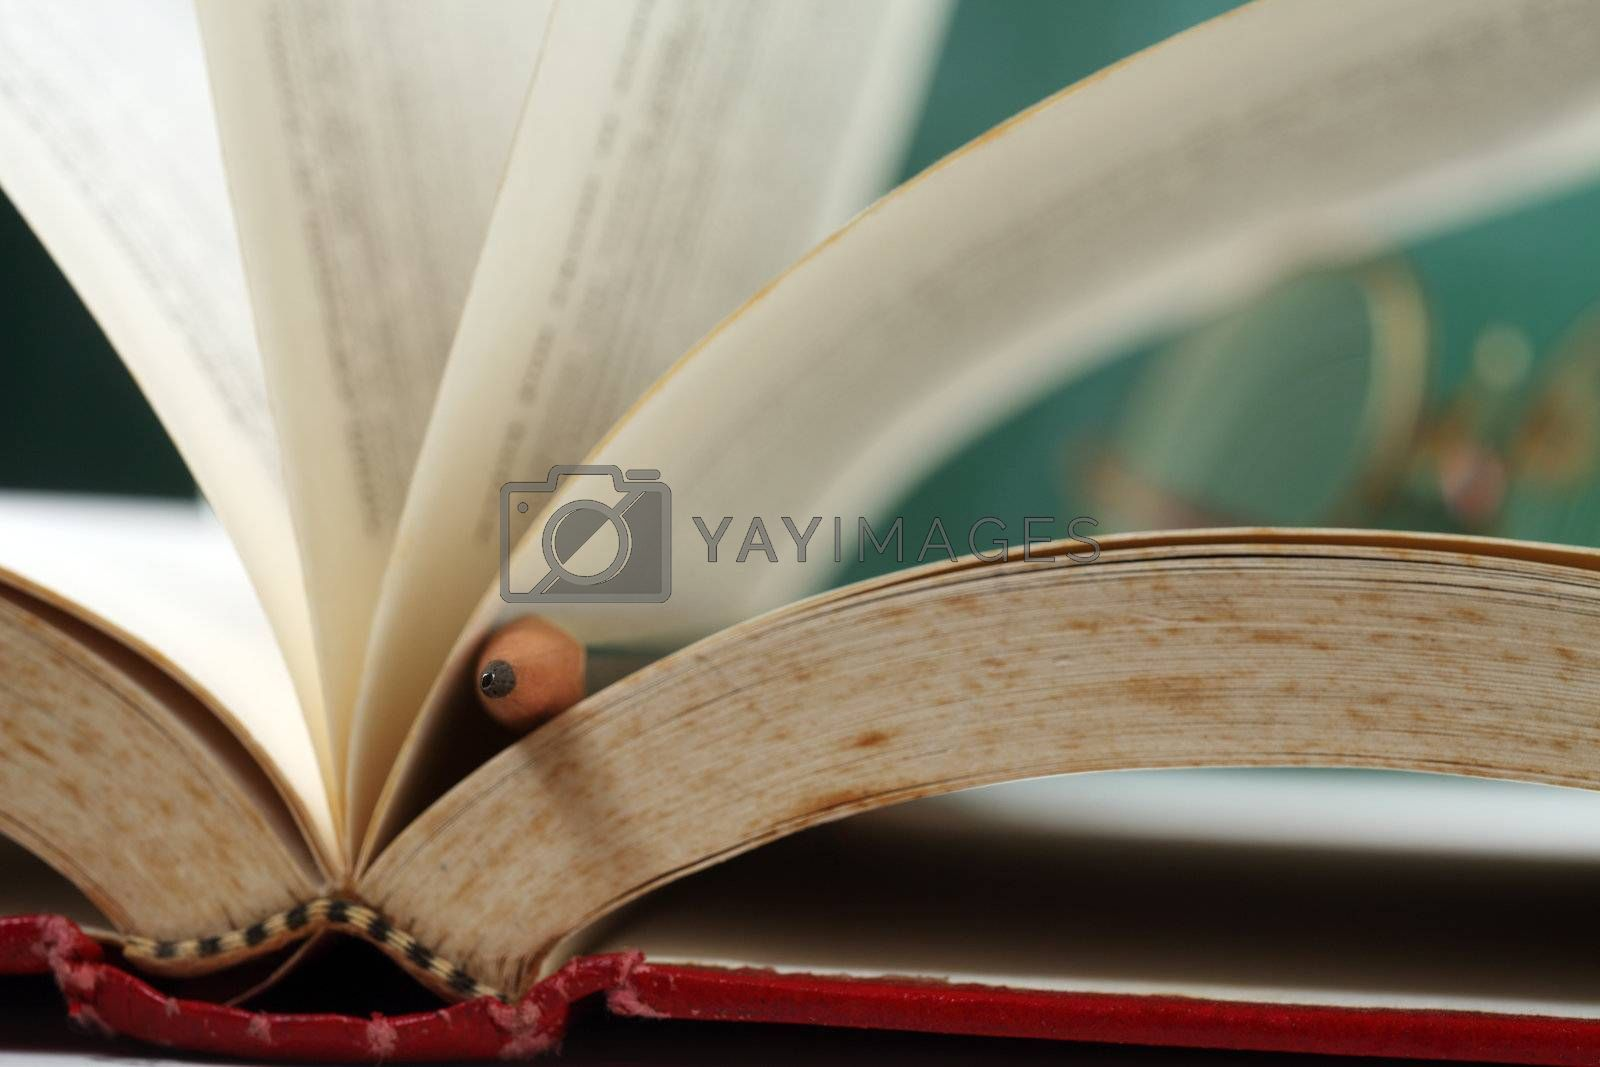 focus on the pencil resting on the book